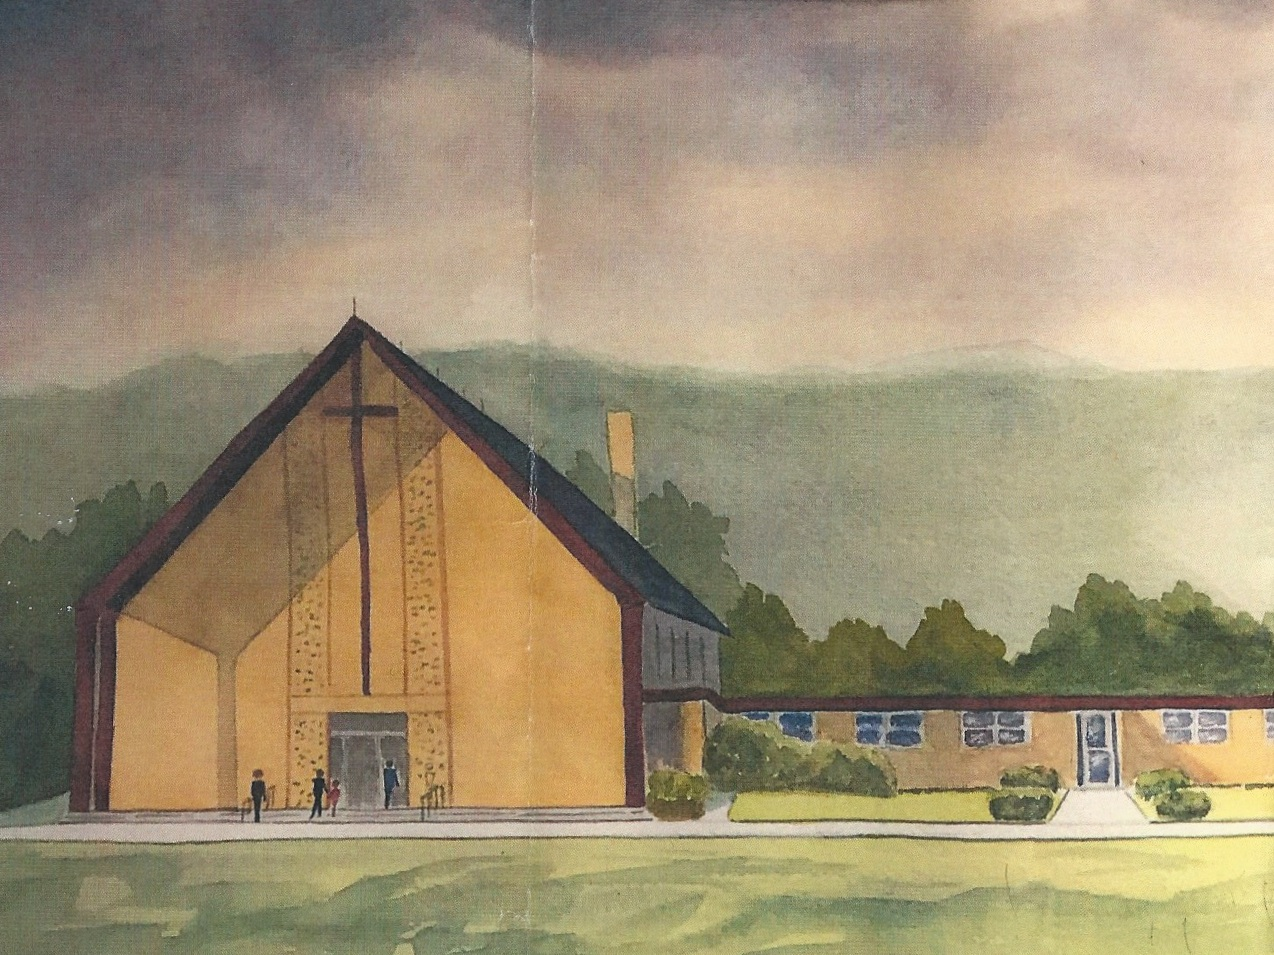 Poughkeepsie UMC. Image credit: Marcy Conners, Church Historian